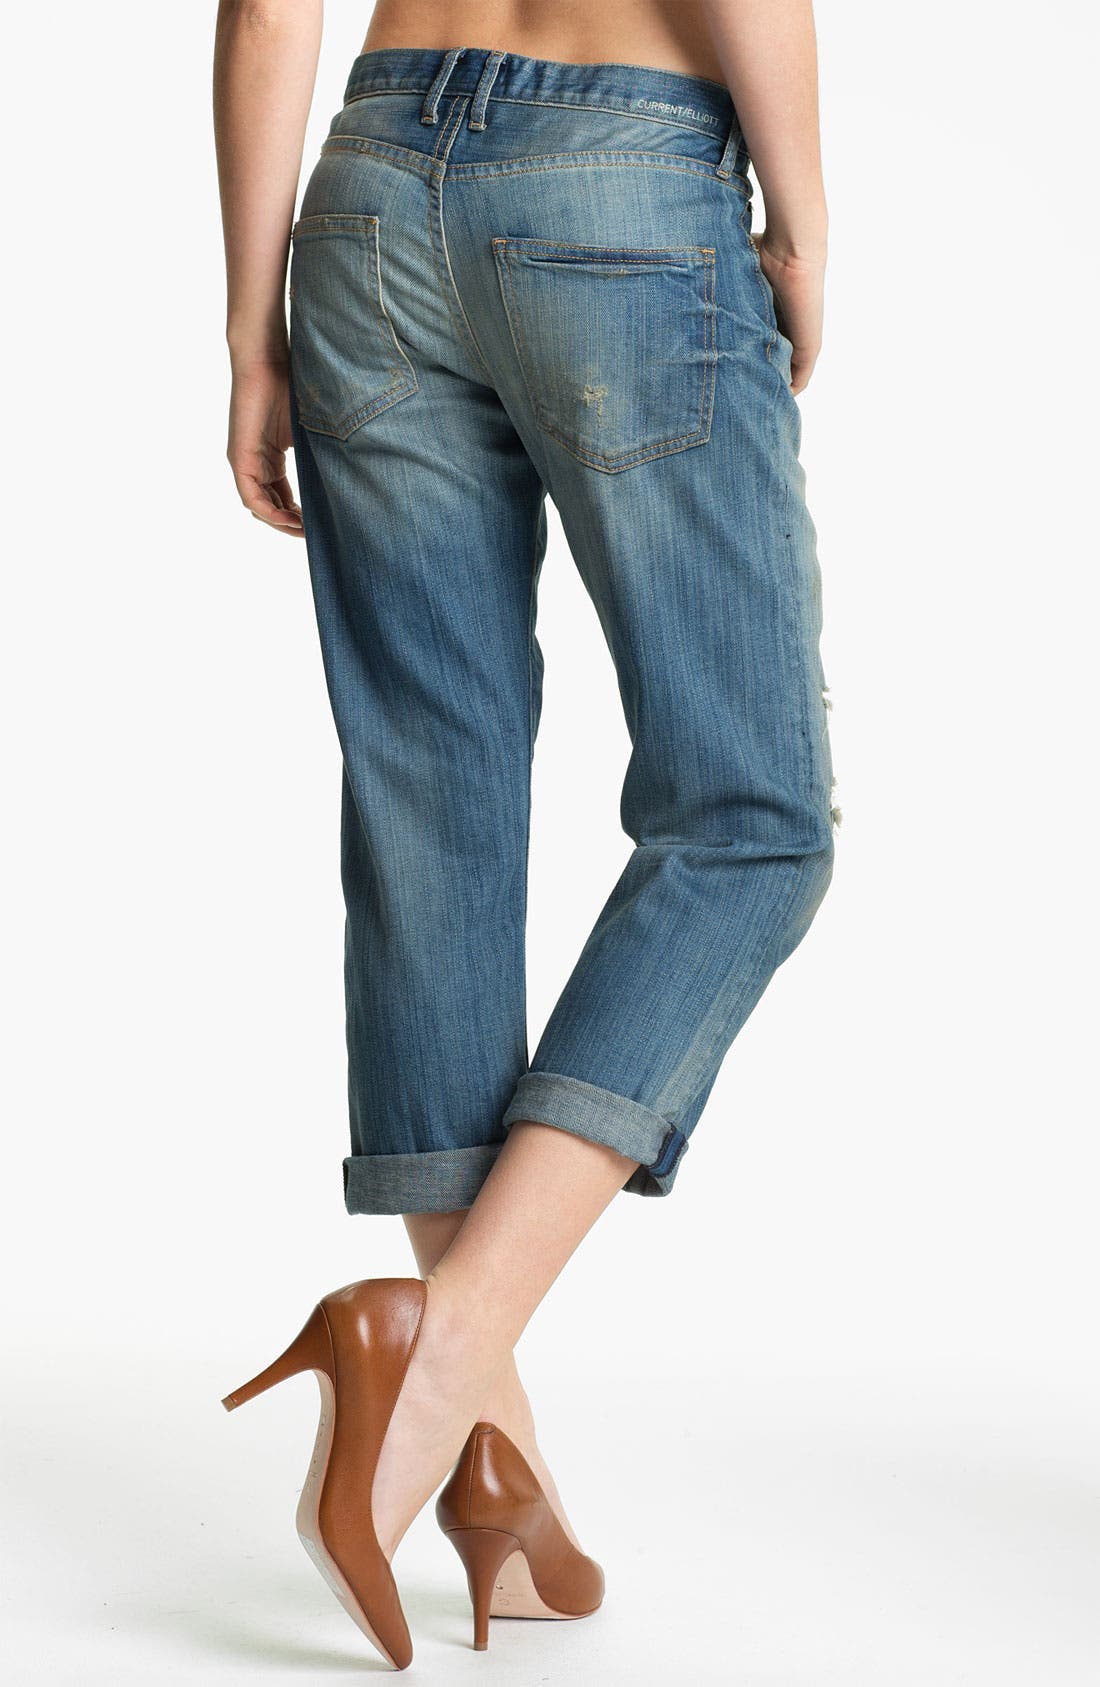 Alternate Image 2  - Current/Elliott 'The Boyfriend Jean' Stretch Jeans (Panhandle with Repair)